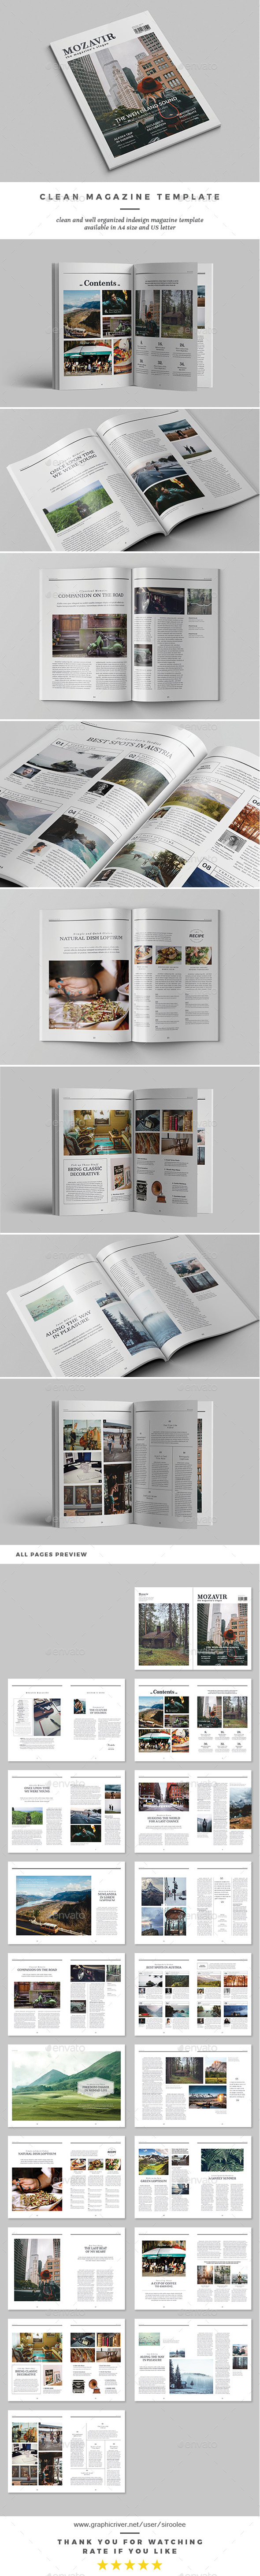 GraphicRiver Mozavir Magazine 20683620